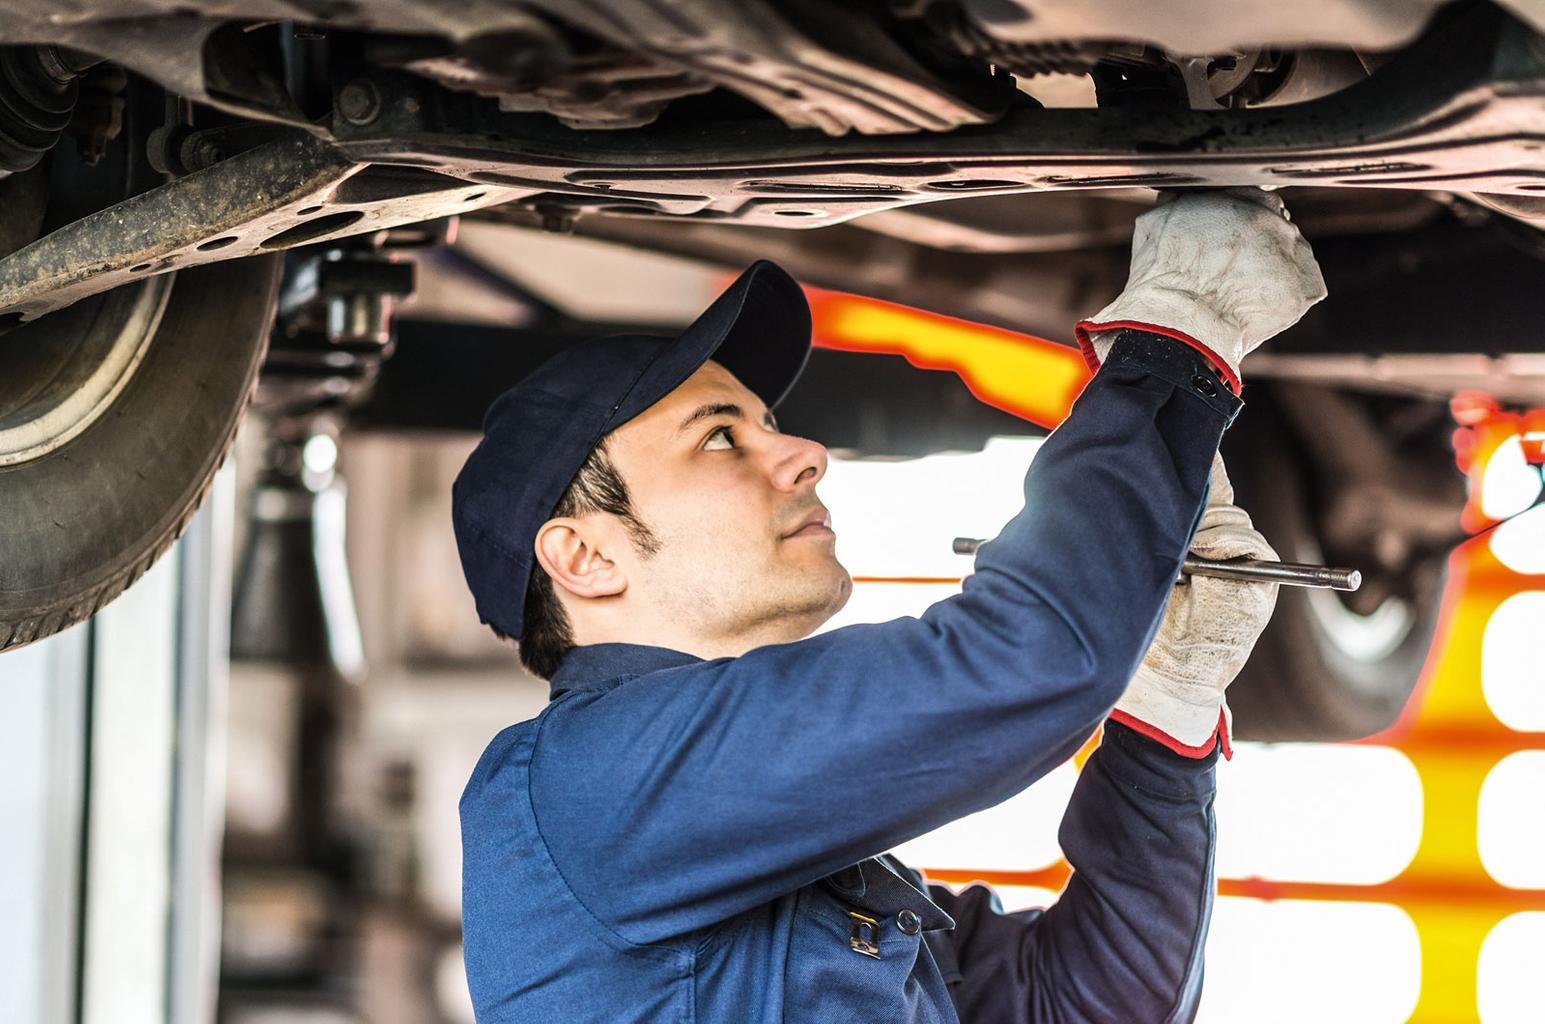 MOT test changes in 2018, what are they and how could they affect you?